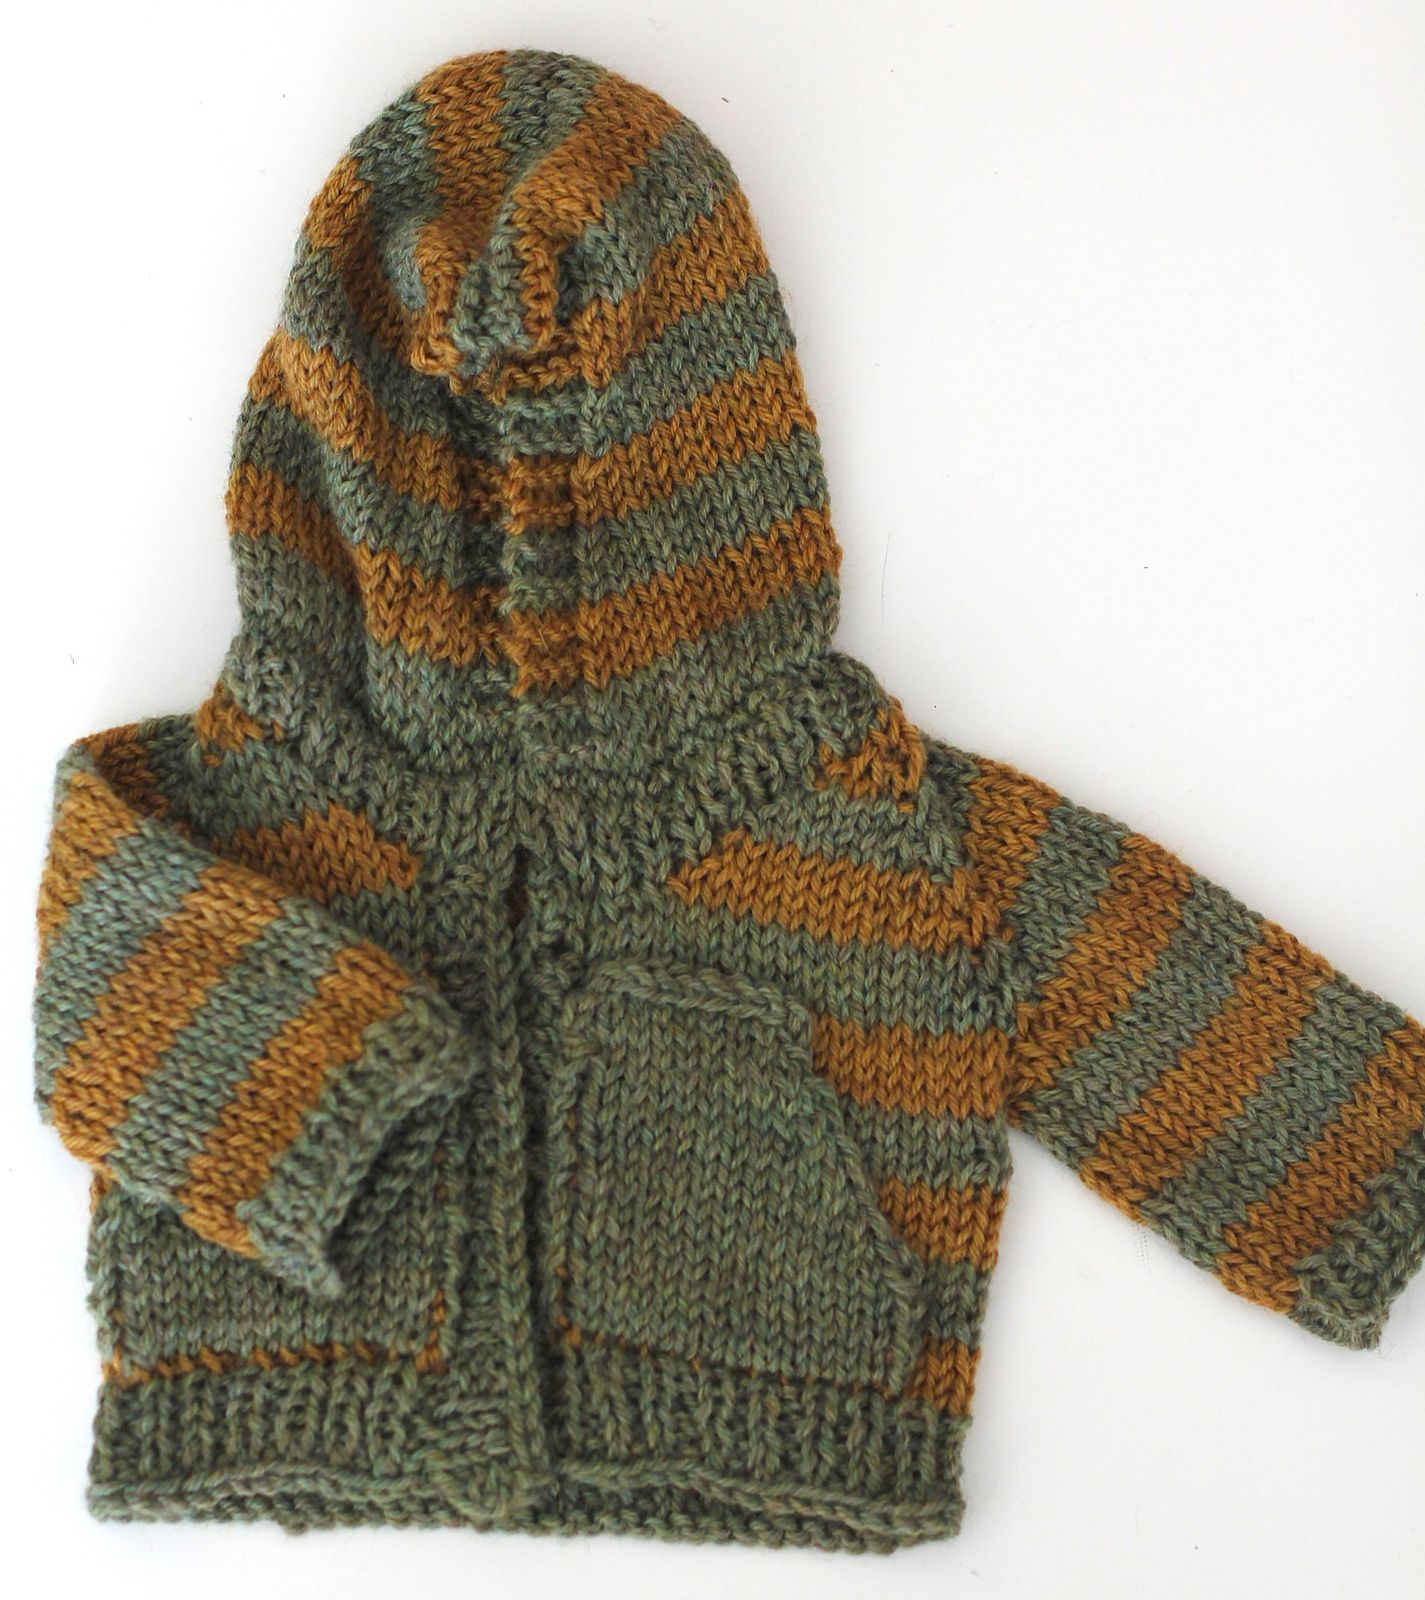 16bbfb48f4a9 Ravelry  Baby Sweater Buffet by Allyson Dykhuizen